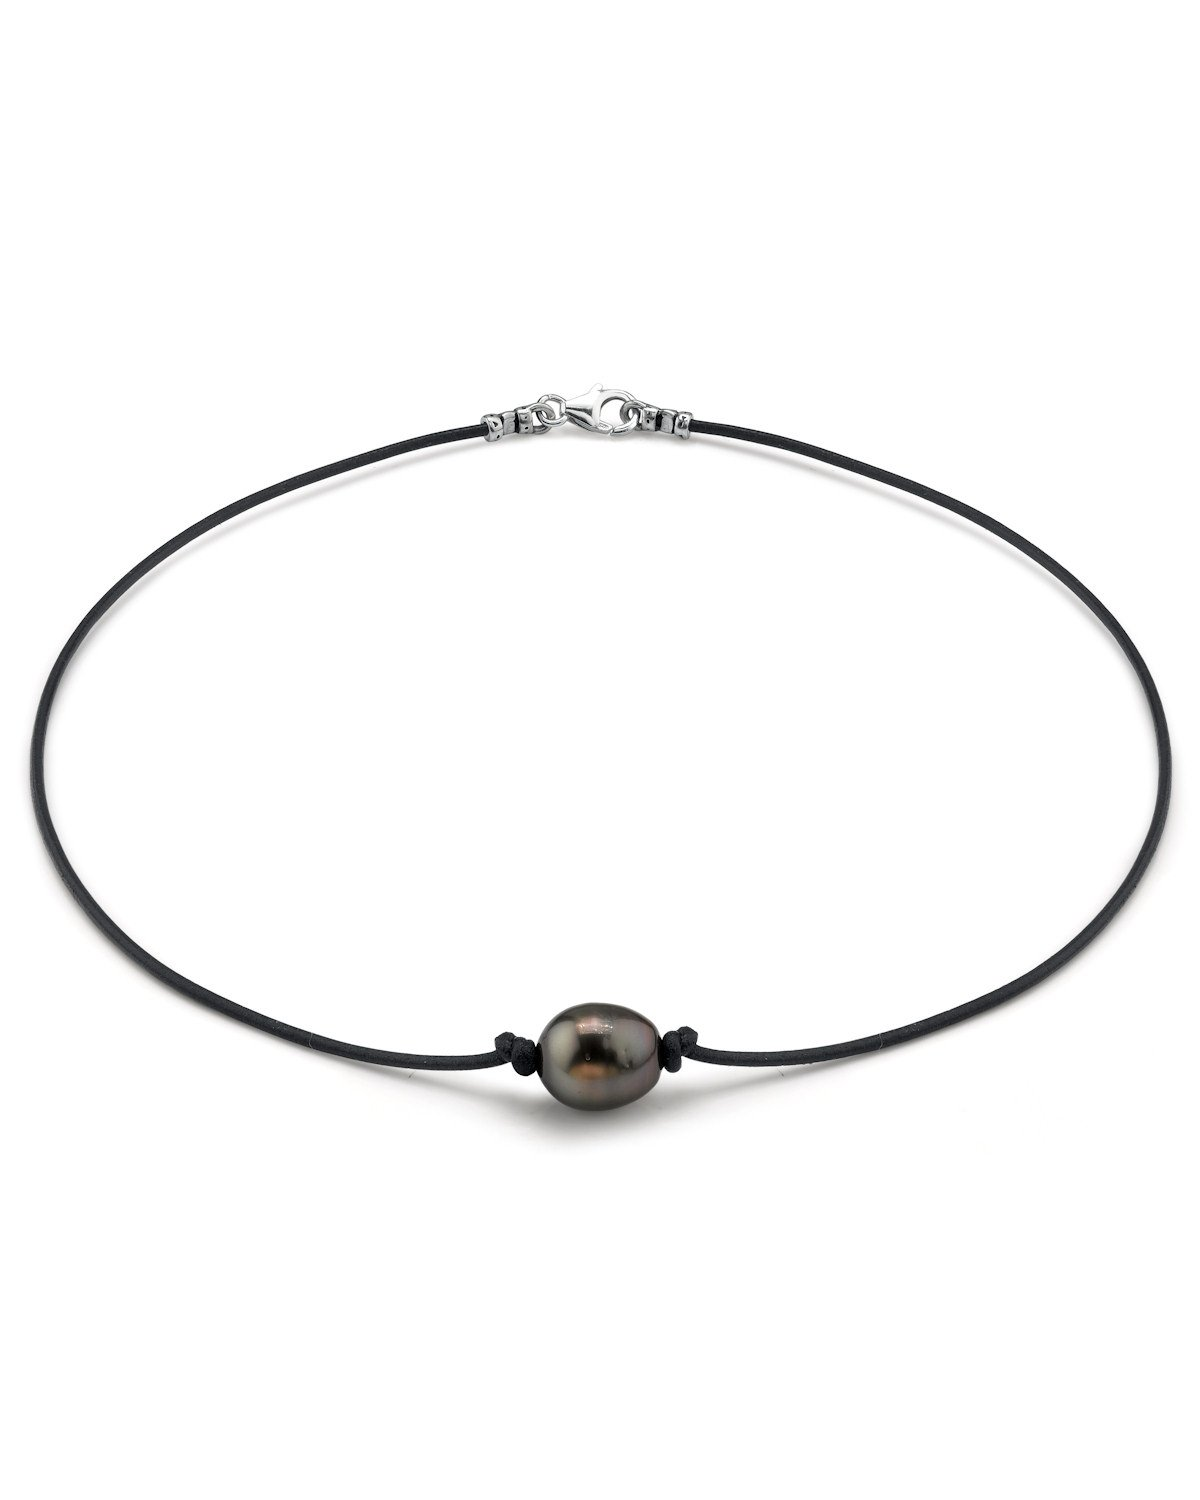 11-12mm Tahitian Baroque Cultured Pearl Leather Necklace